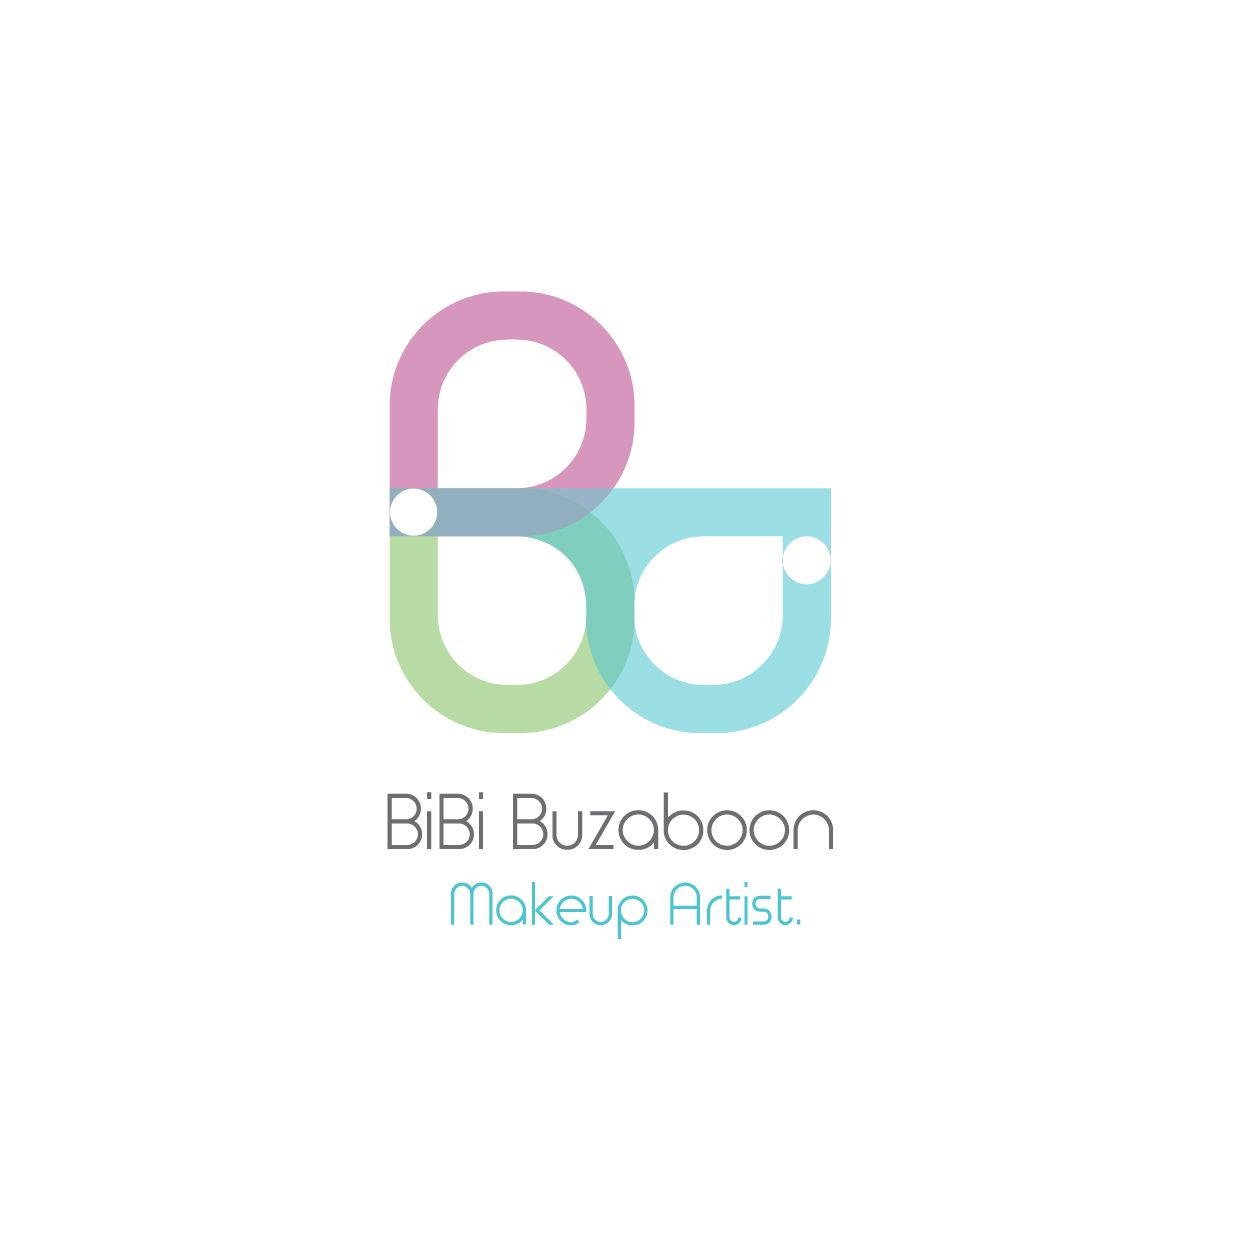 Logo Designed By Me For A Makeup Artist In Bahrain